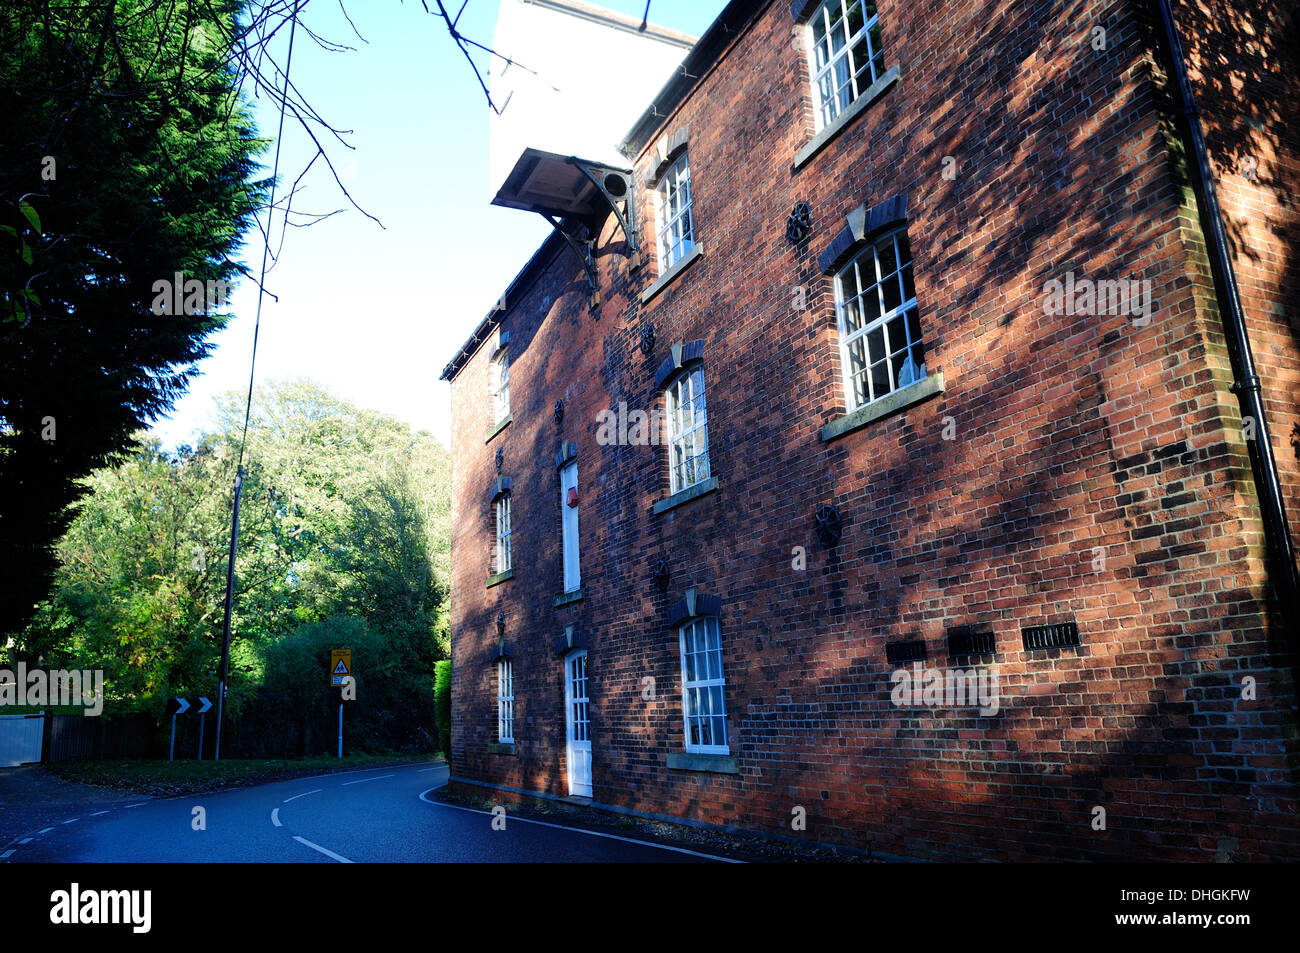 Kirlington mill and pond feed by the r4iver stock photo 62446829 kirlington mill and pond feed by the r4iver greetnottinghamshireenglanduk m4hsunfo